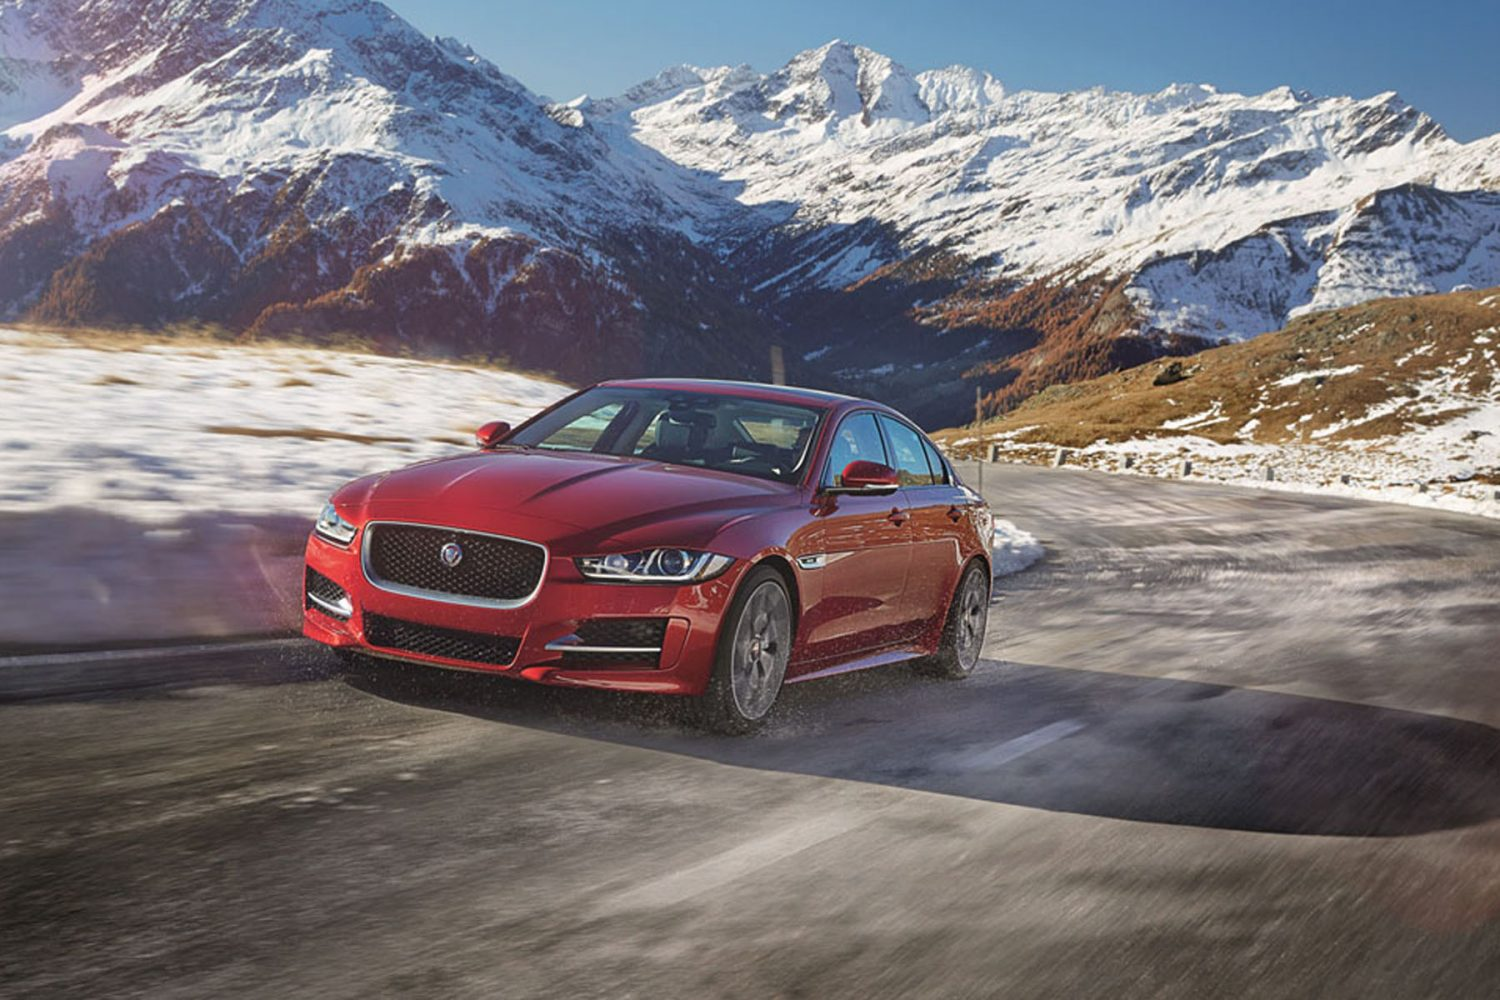 Jaguar XE Model Year 2017